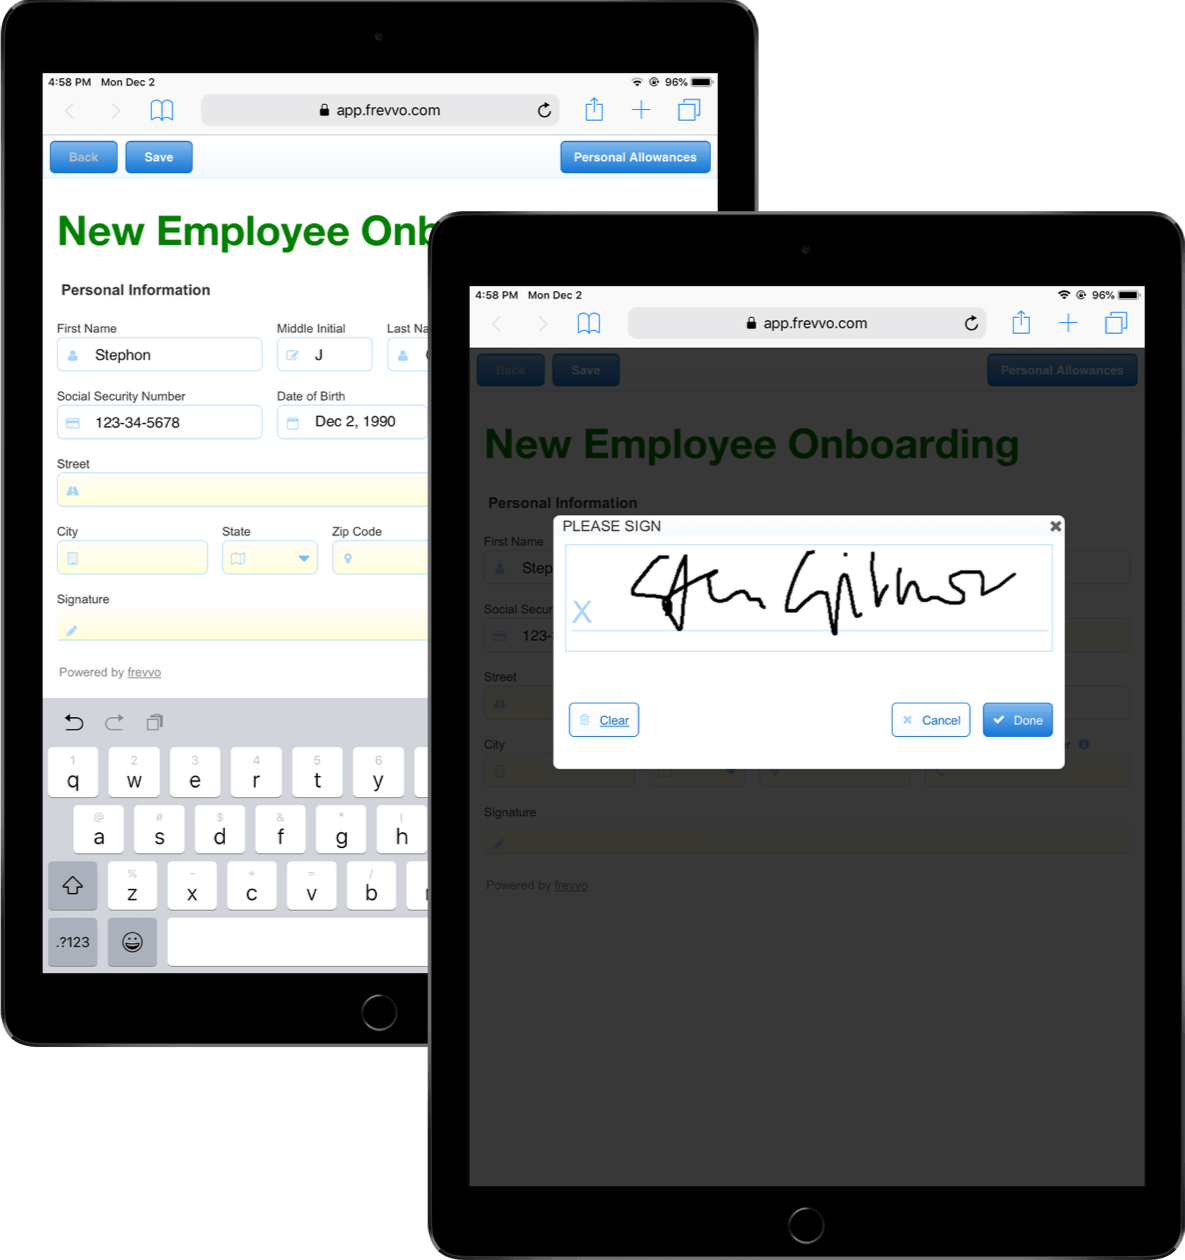 Digital signatures on all devices